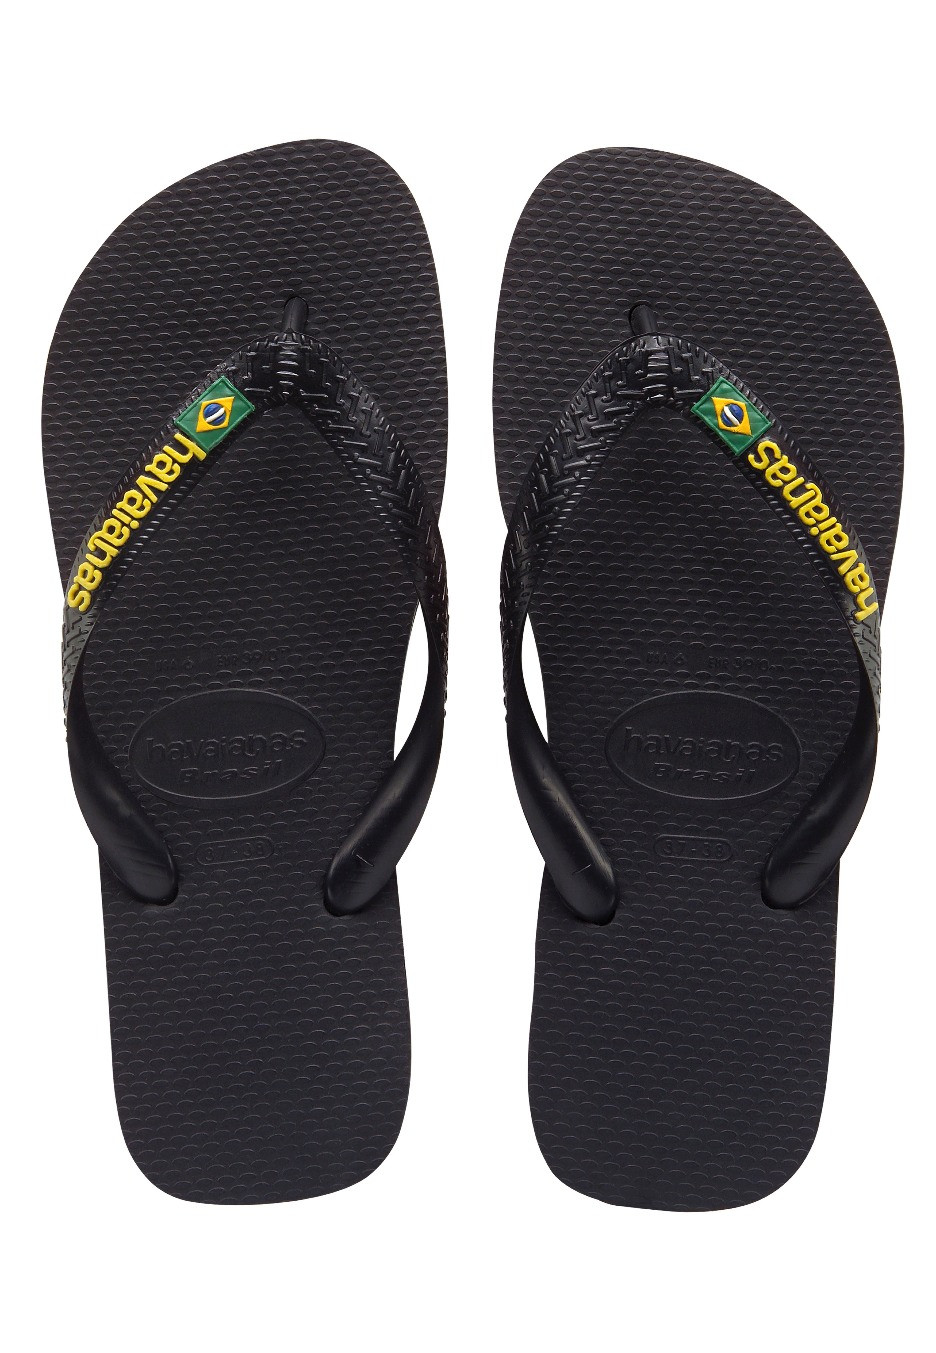 d521b6363b975 Havaianas - Brasil Logo - Sandals - Streetwear Shop - Impericon.com UK